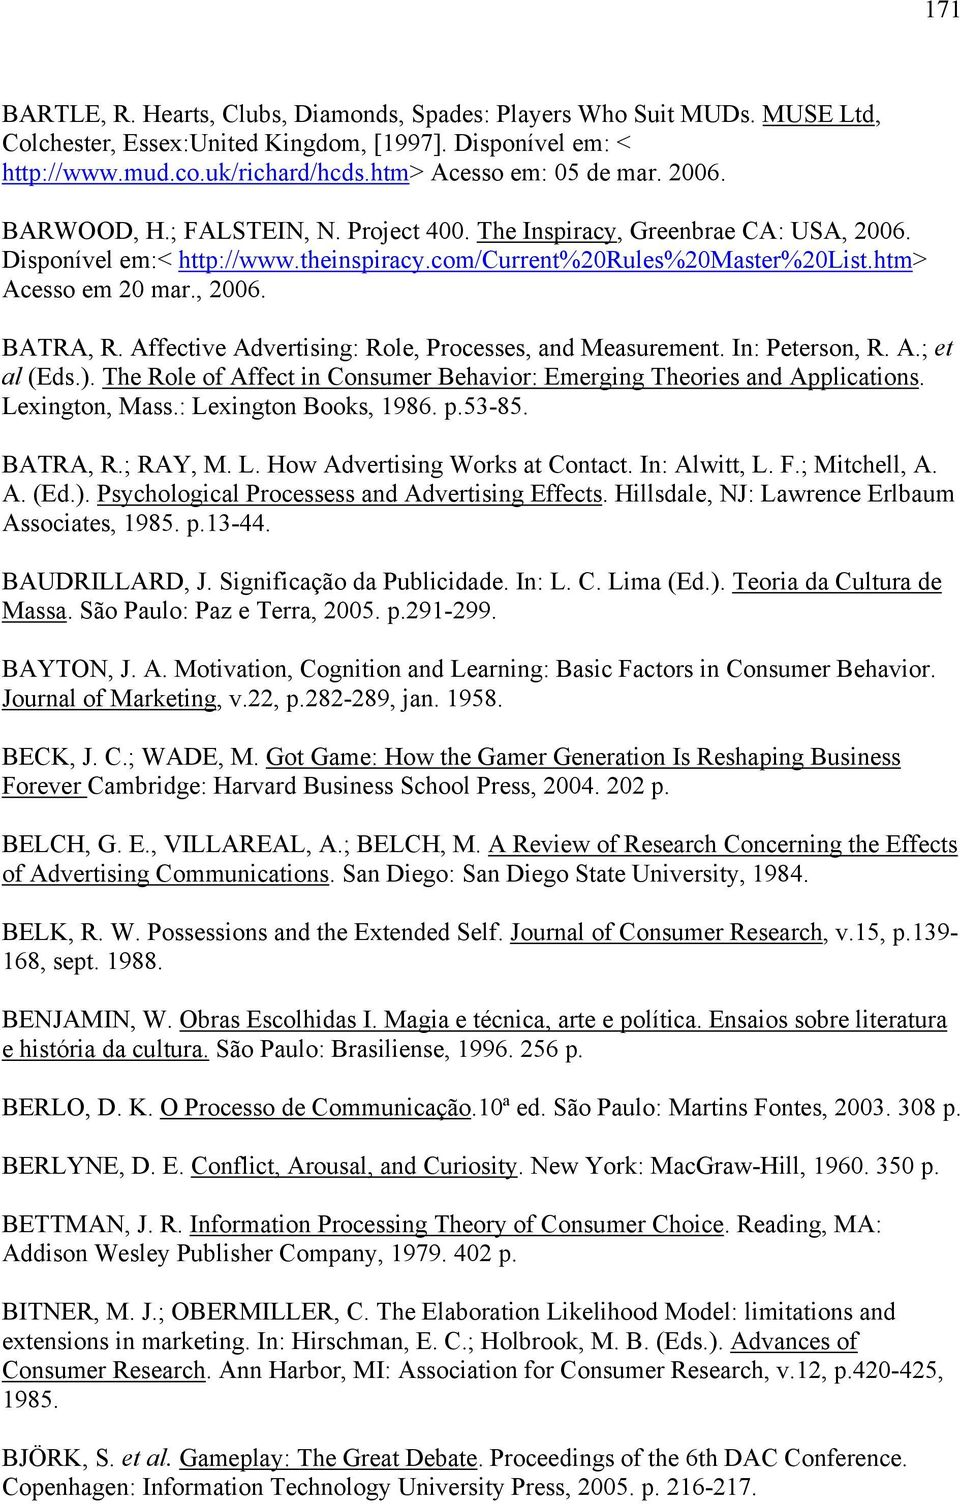 Affective Advertising: Role, Processes, and Measurement. In: Peterson, R. A.; et al (Eds.). The Role of Affect in Consumer Behavior: Emerging Theories and Applications. Lexington, Mass.